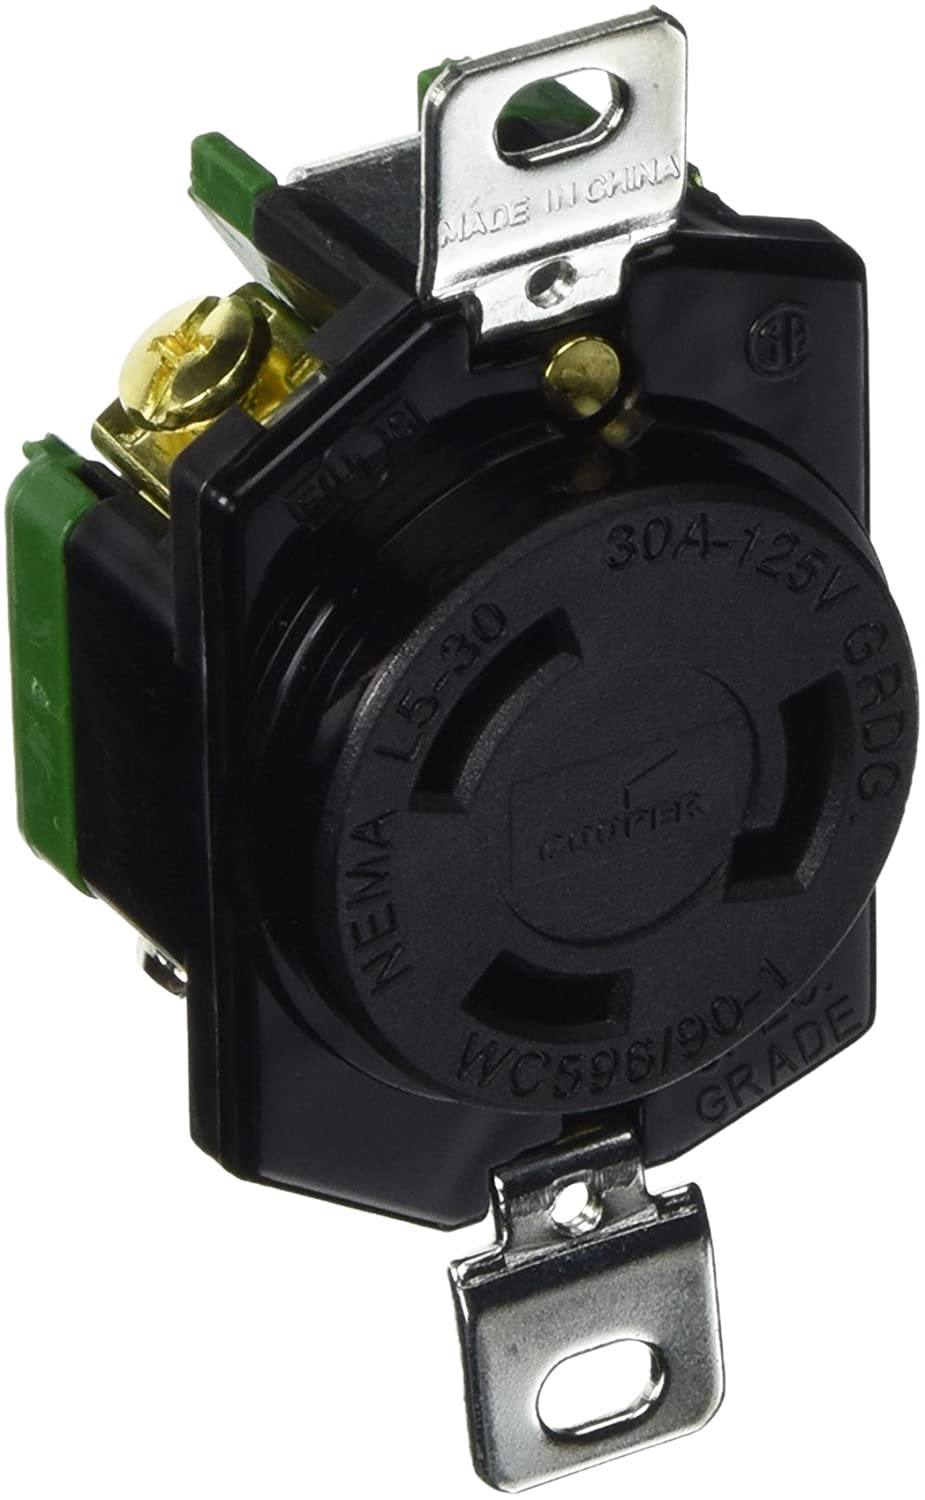 EATON Cooper Wiring Devices, L530R-Single Locking Receptacle, 30A -125V, 2-pole, 3-wire Grounding Back & Side Wire, Fed. SpeclW-C-596F